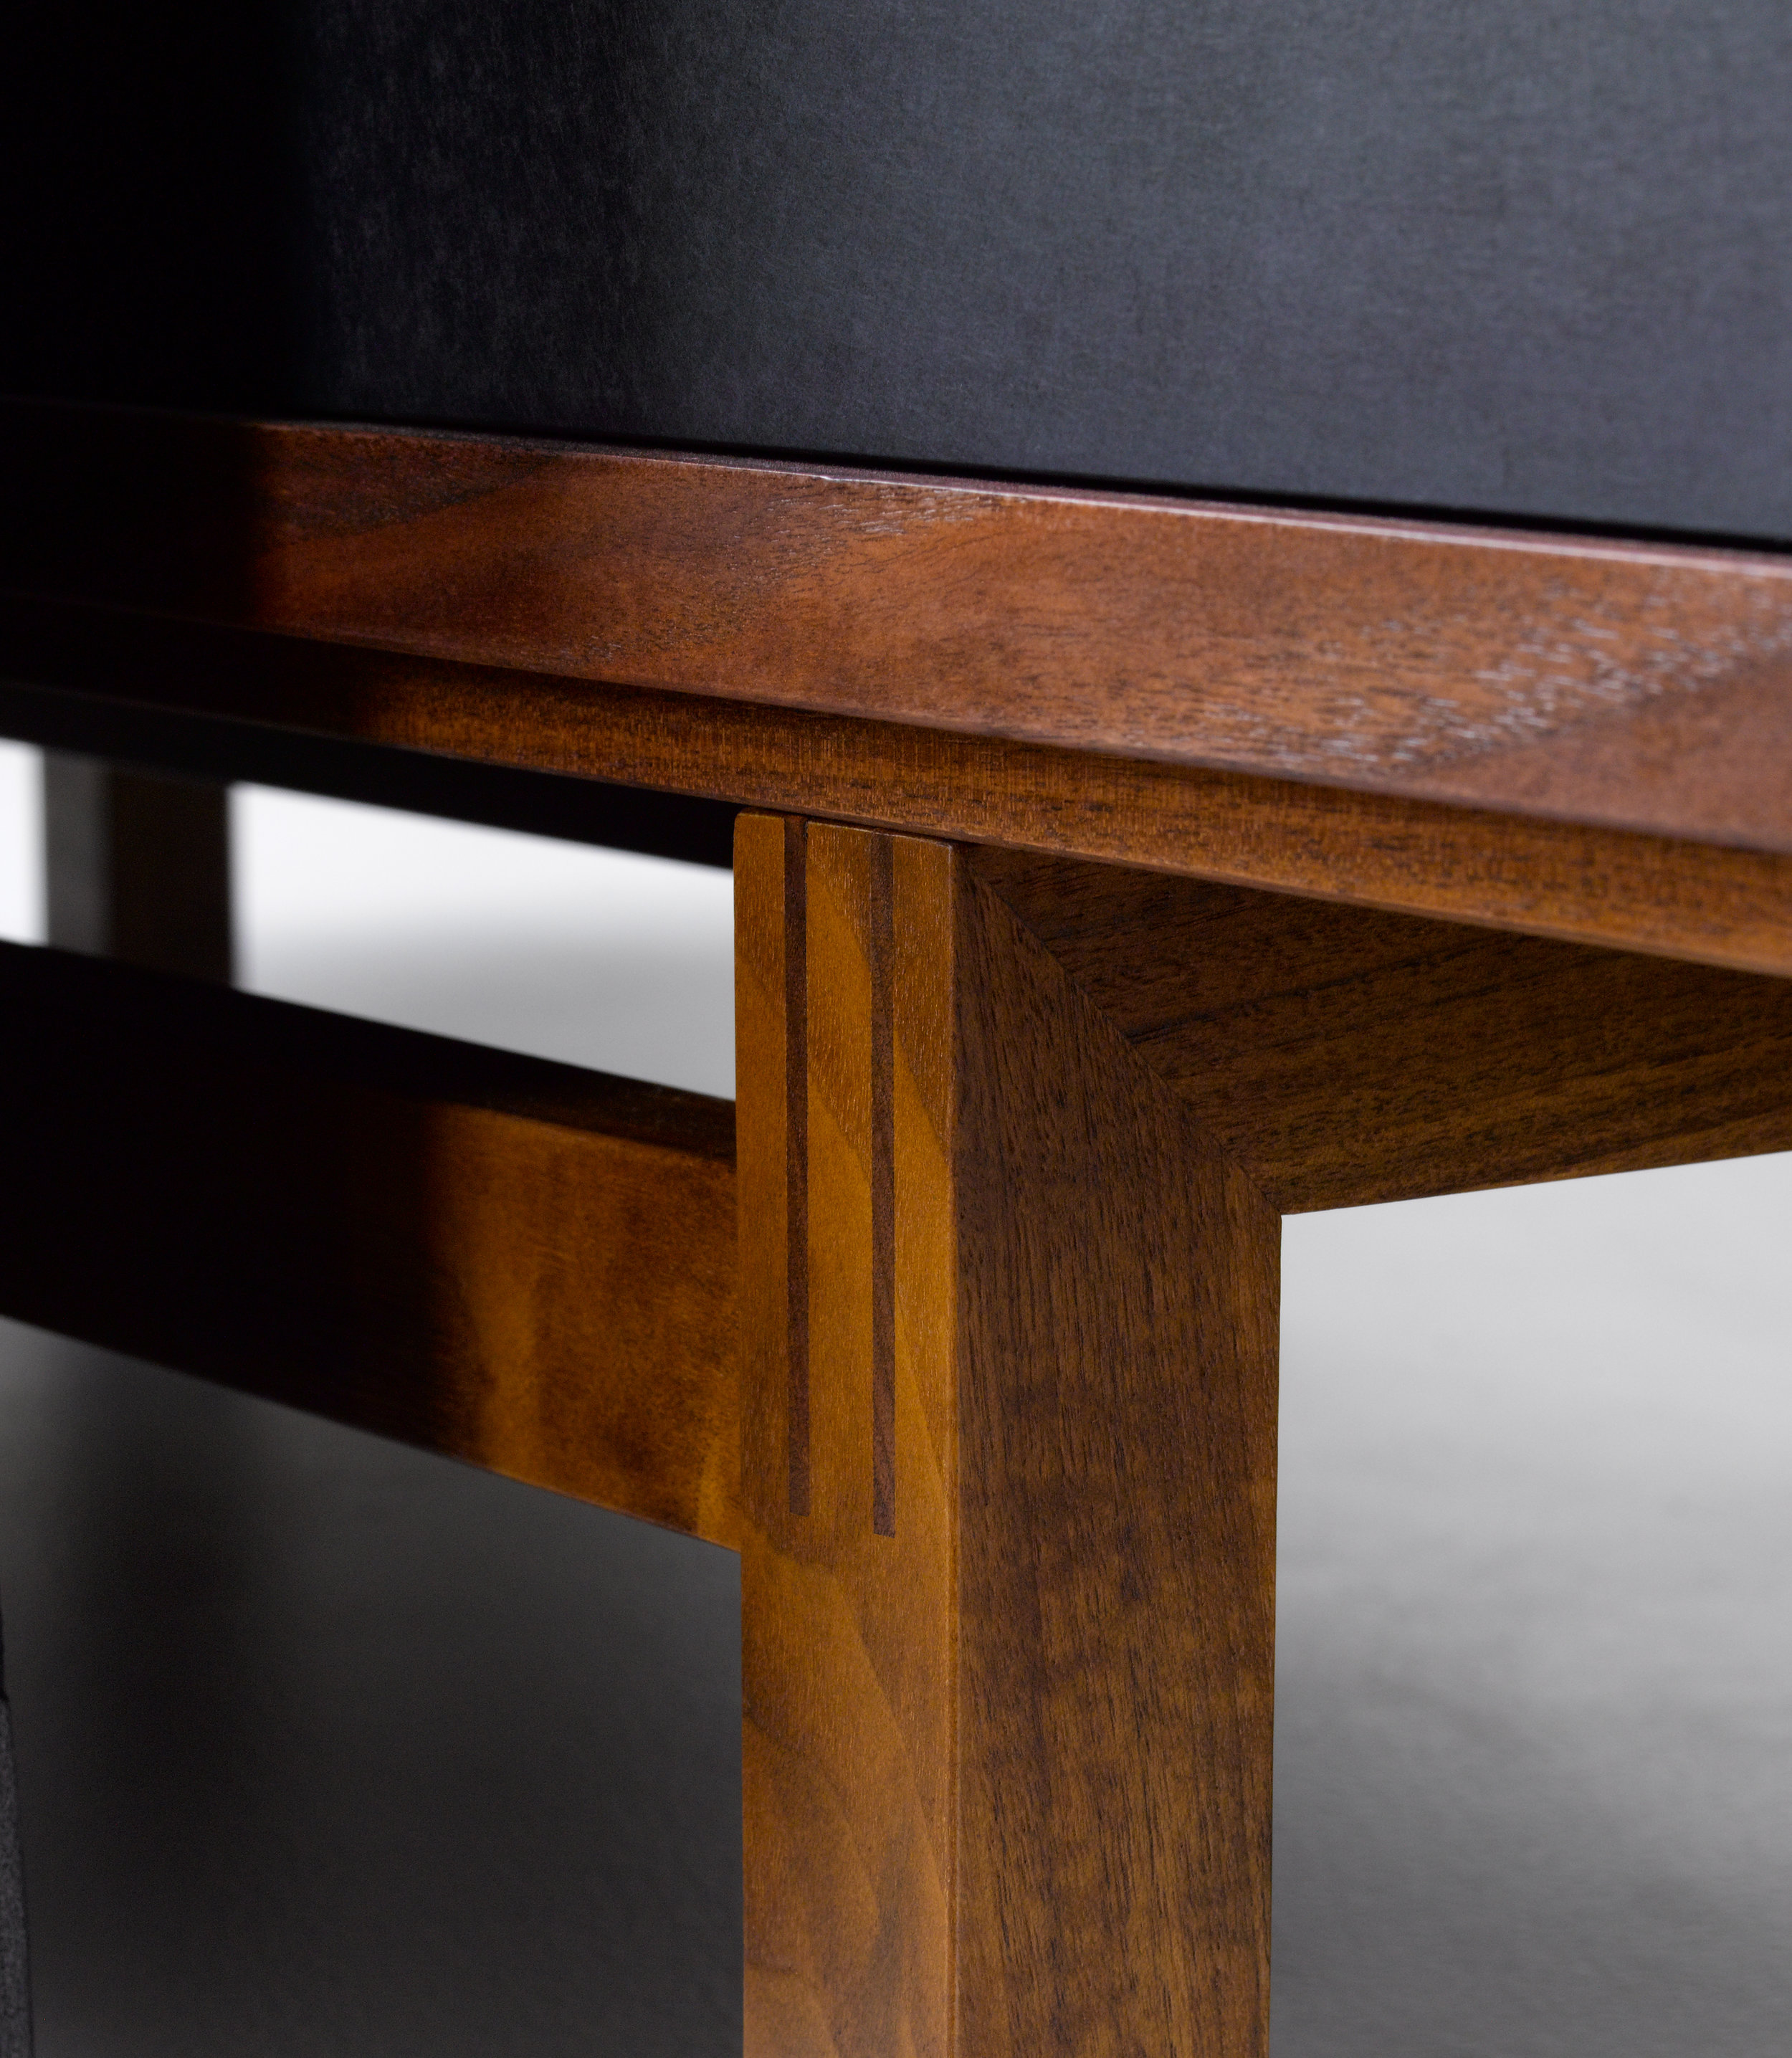 > Detail of joinery at Credenza base.